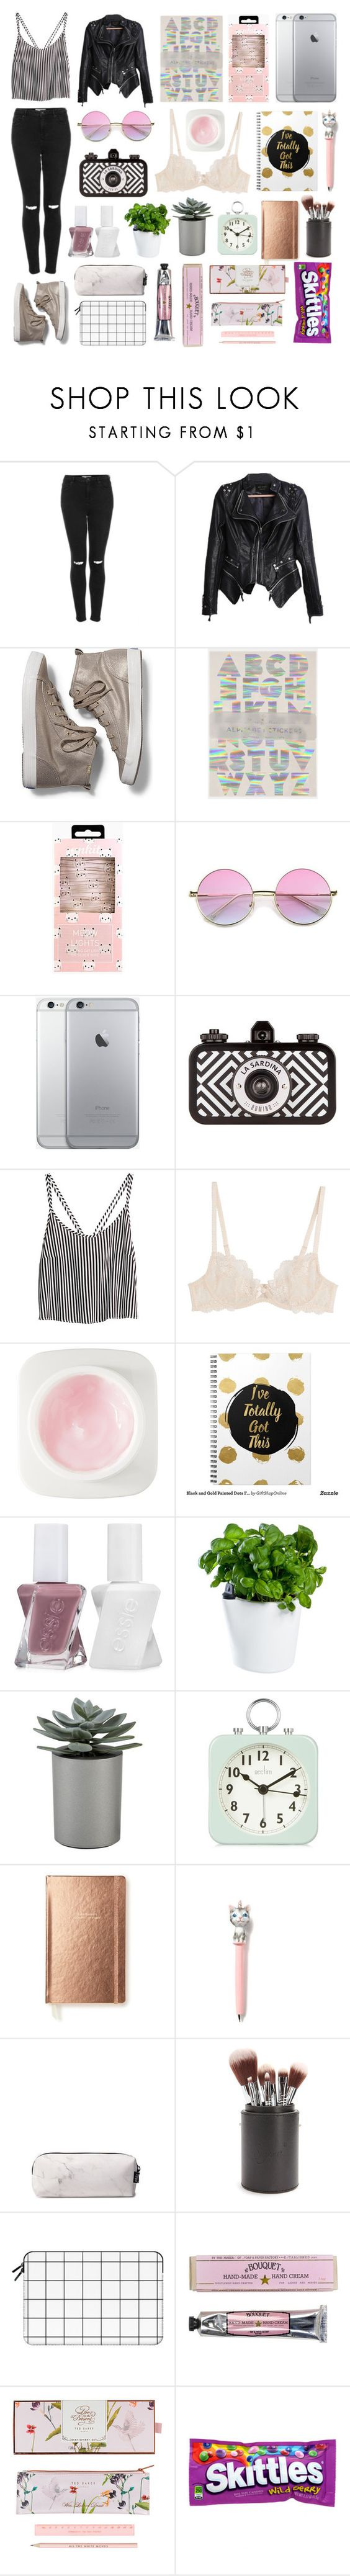 """""""Untitled #836"""" by gabrielarossadoguedes ❤ liked on Polyvore featuring Topshop, Keds, H&M, L'Agent By Agent Provocateur, Erno Laszlo, Essie, Royal VKB, Crate and Barrel, Acctim and Kate Spade"""